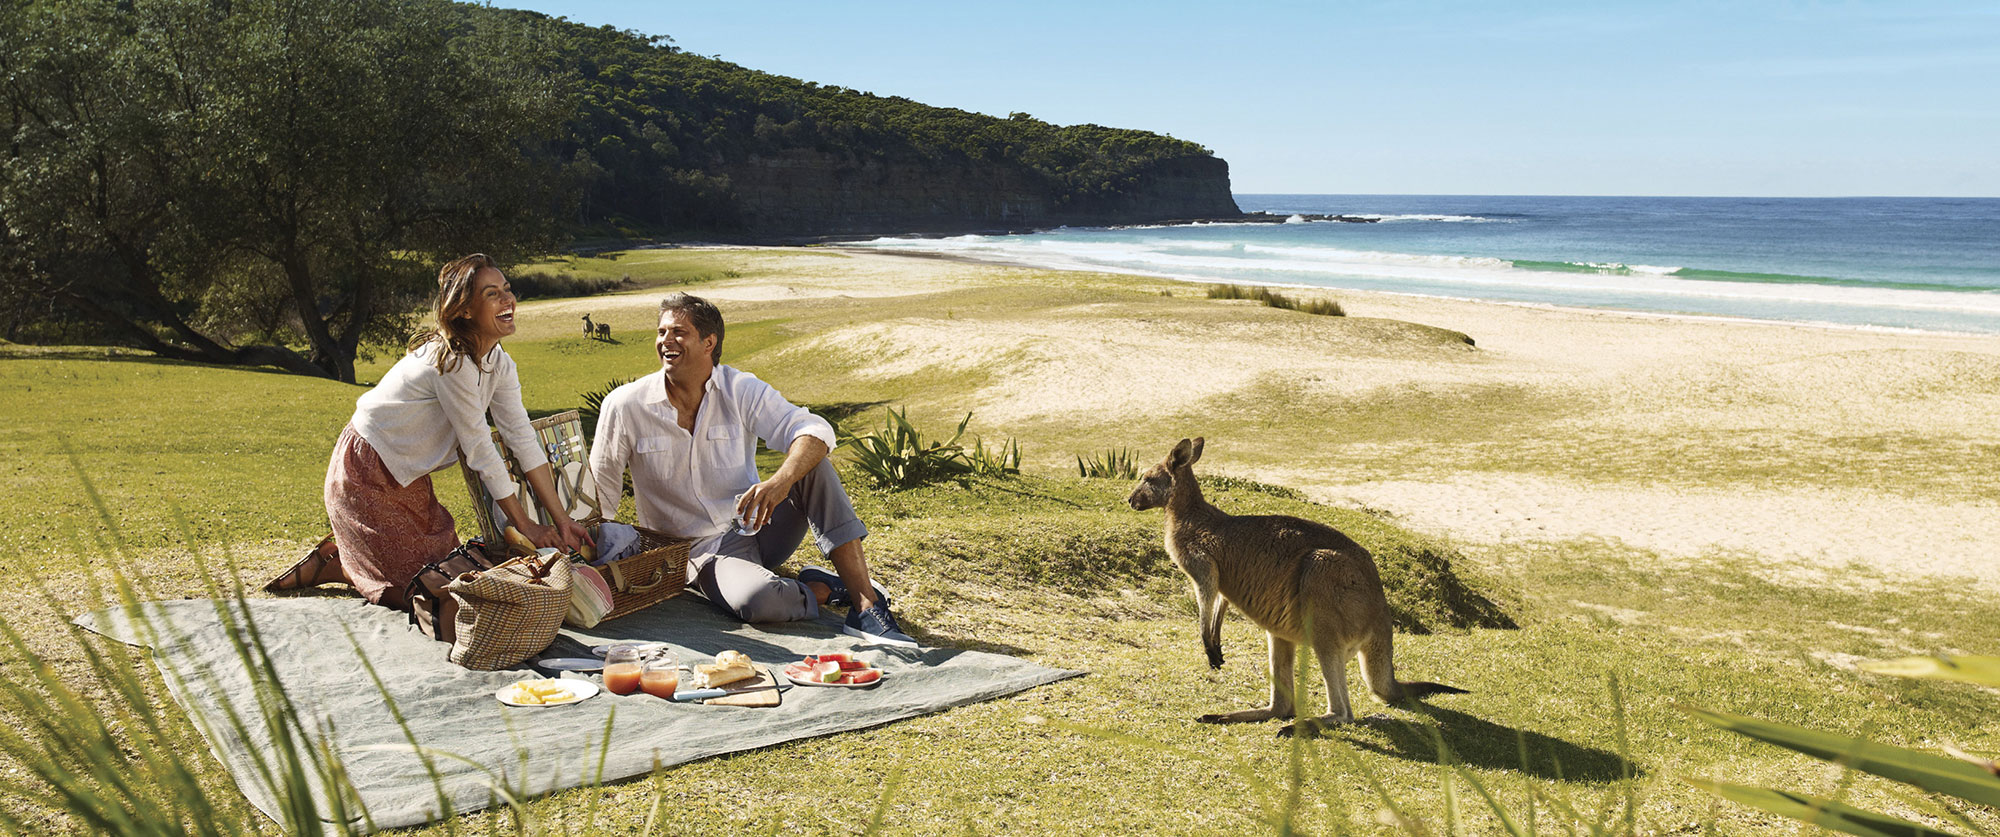 best multi destination travel packages - Pebbly beach couple - Kangaroo beach